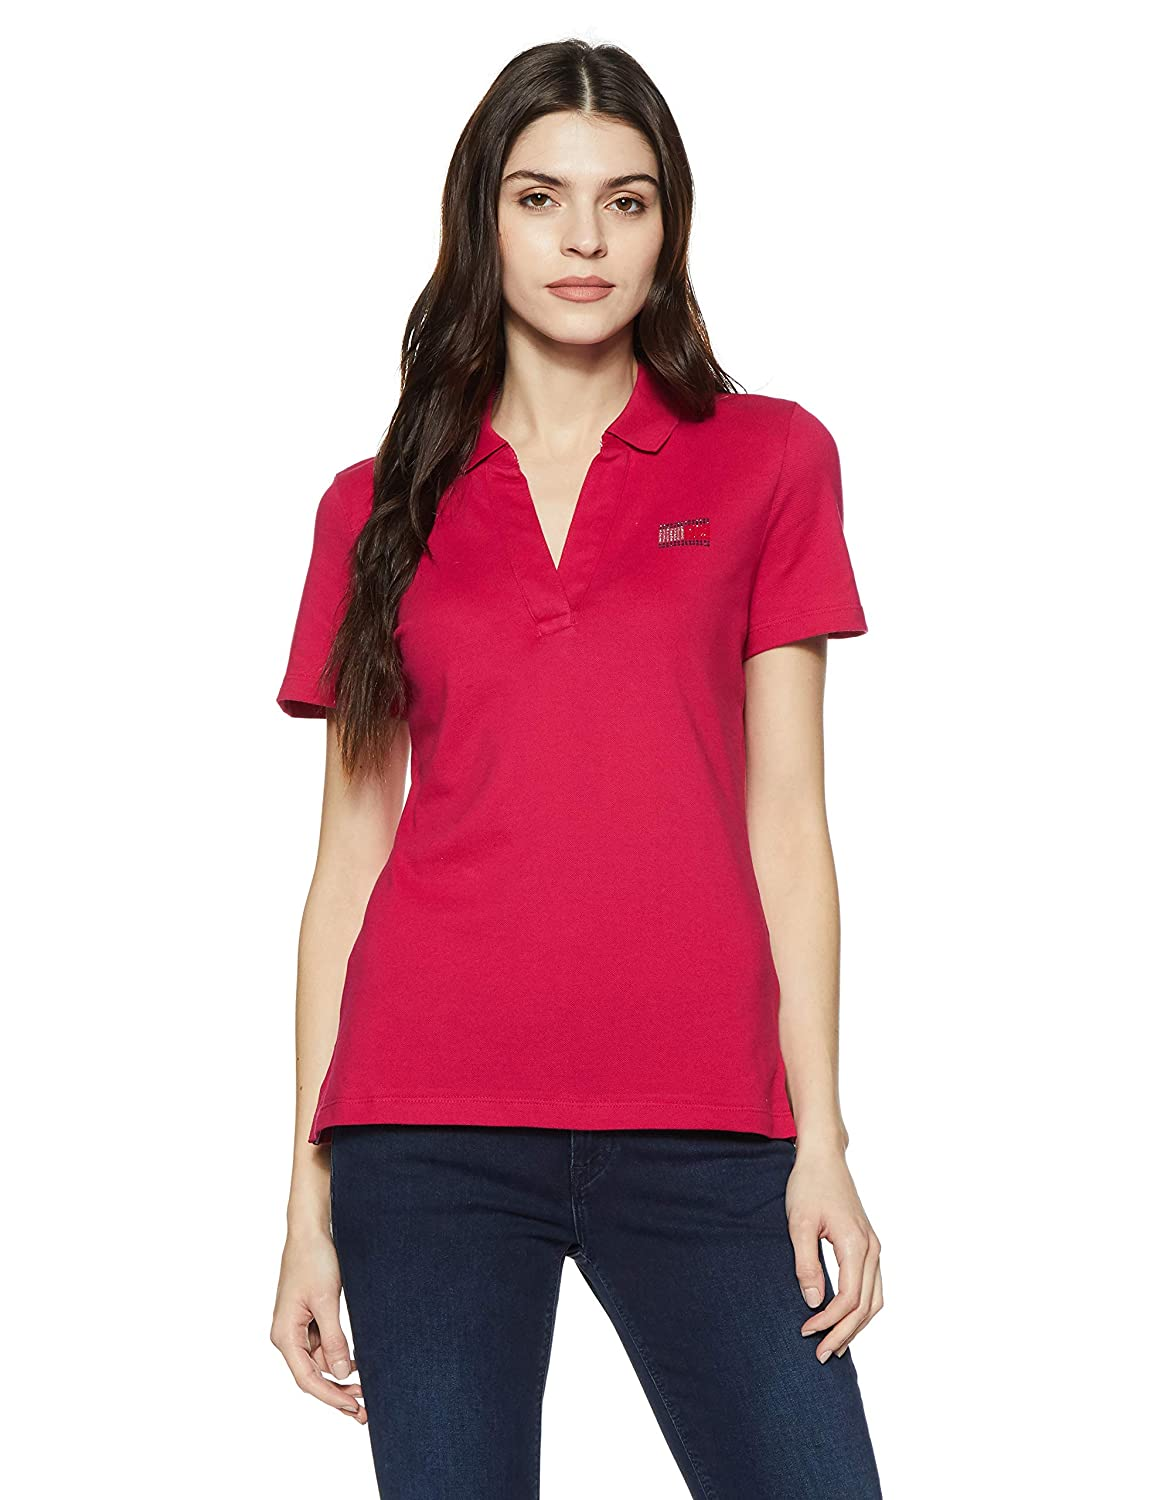 85e5cb4f70c Tommy Hilfiger Women's Plain Regular Fit Polo: Amazon.in: Clothing &  Accessories